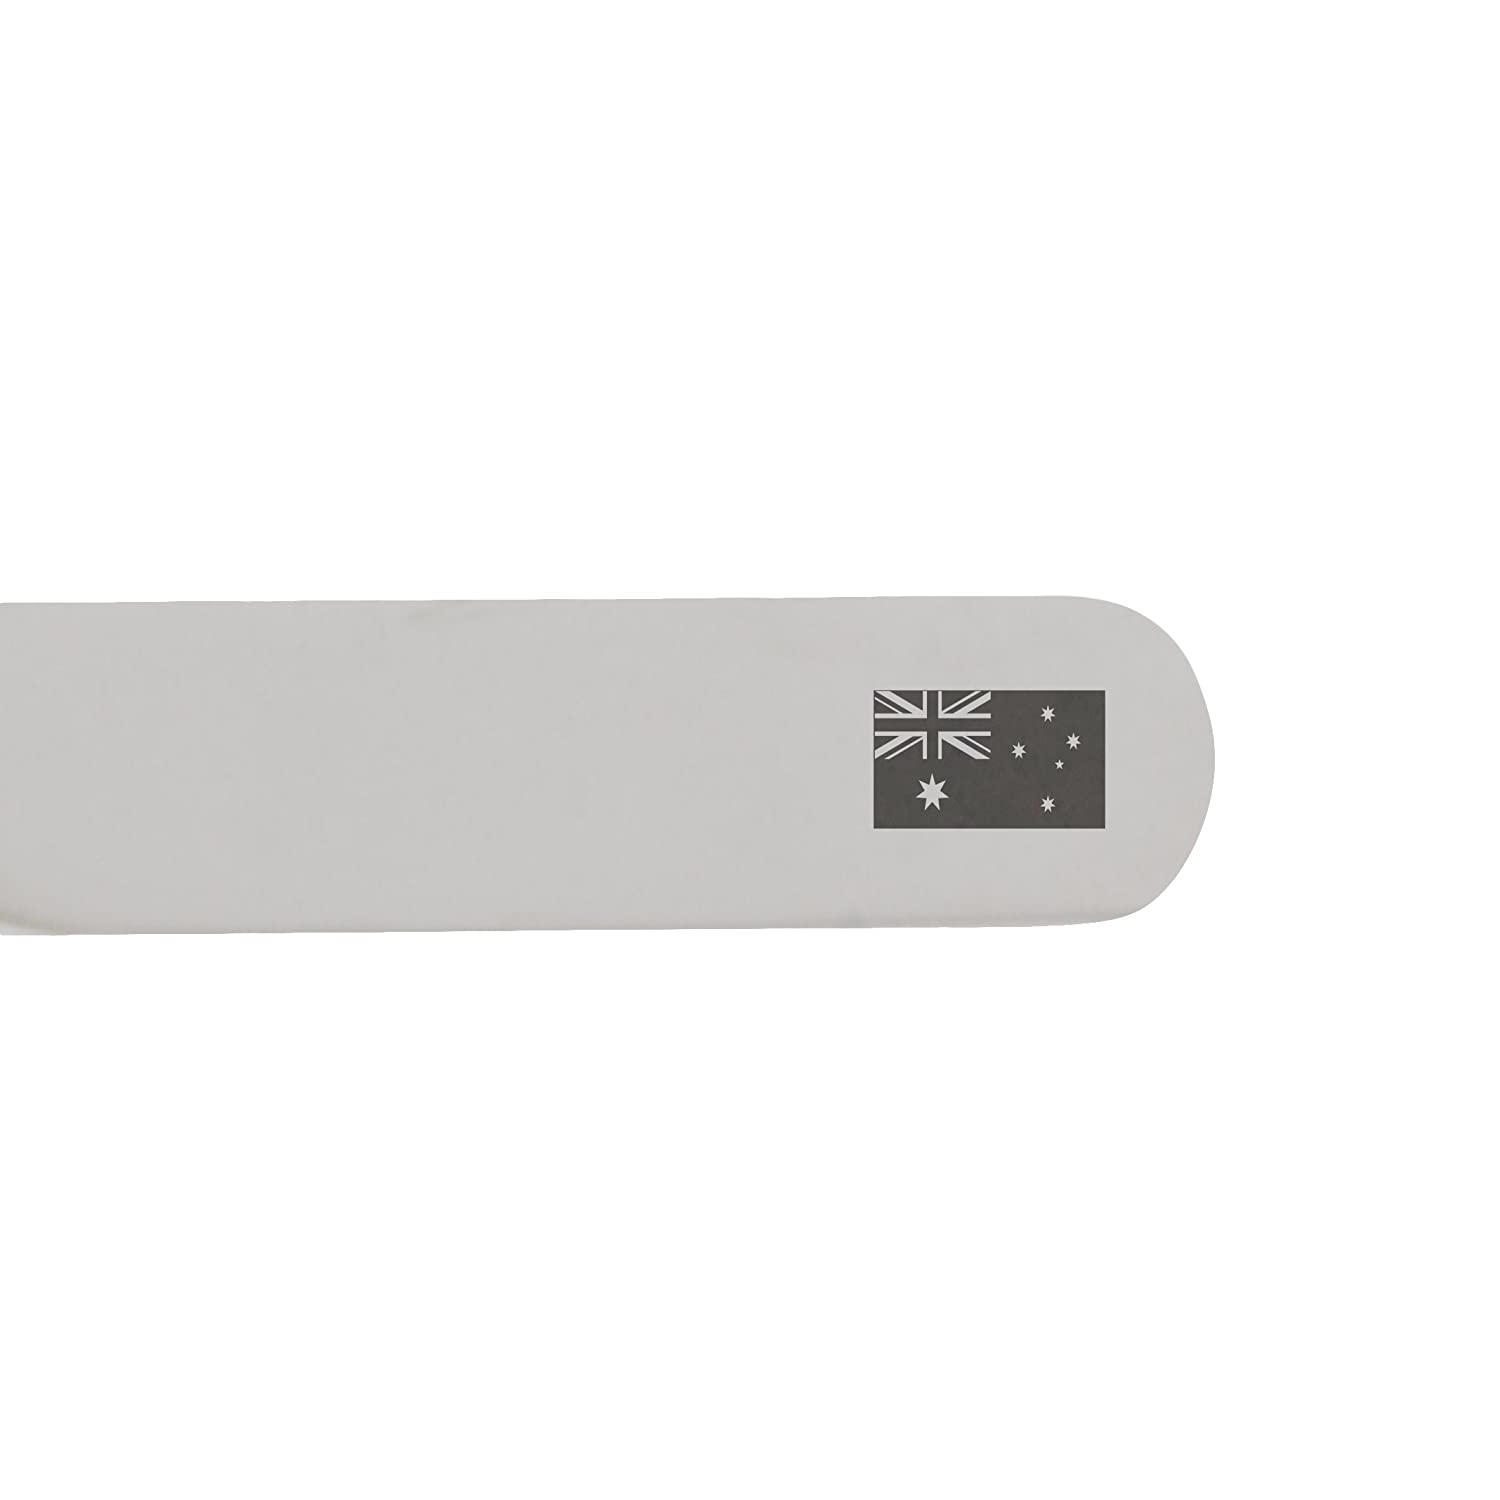 Made In USA MODERN GOODS SHOP Stainless Steel Collar Stays With Laser Engraved Australian Flag Design 2.5 Inch Metal Collar Stiffeners